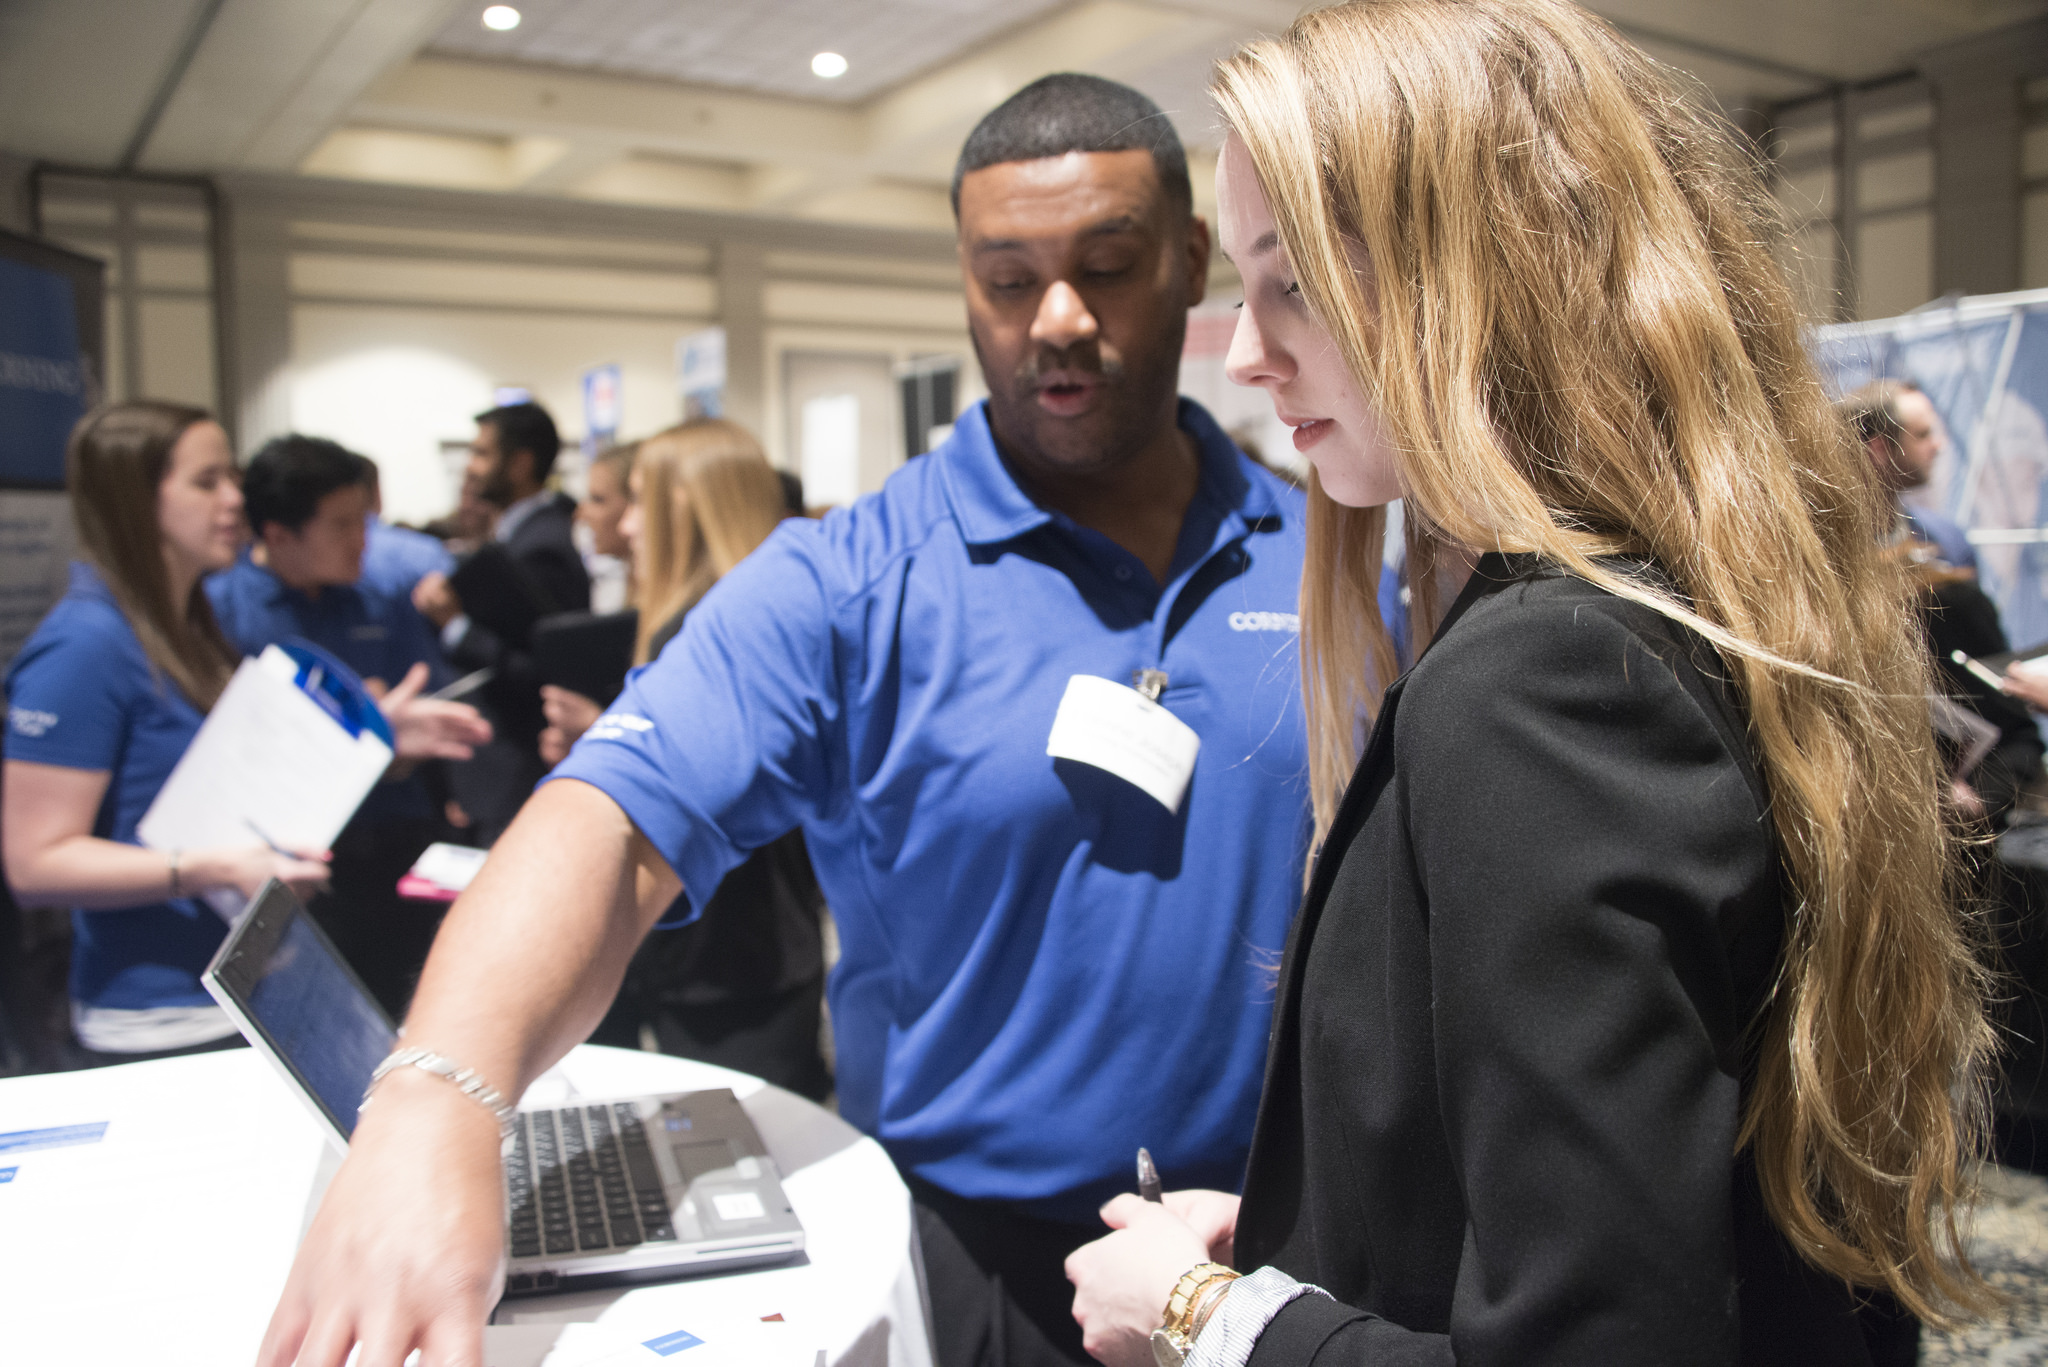 Student attends a career fair and discusses her resume with a recruiter.